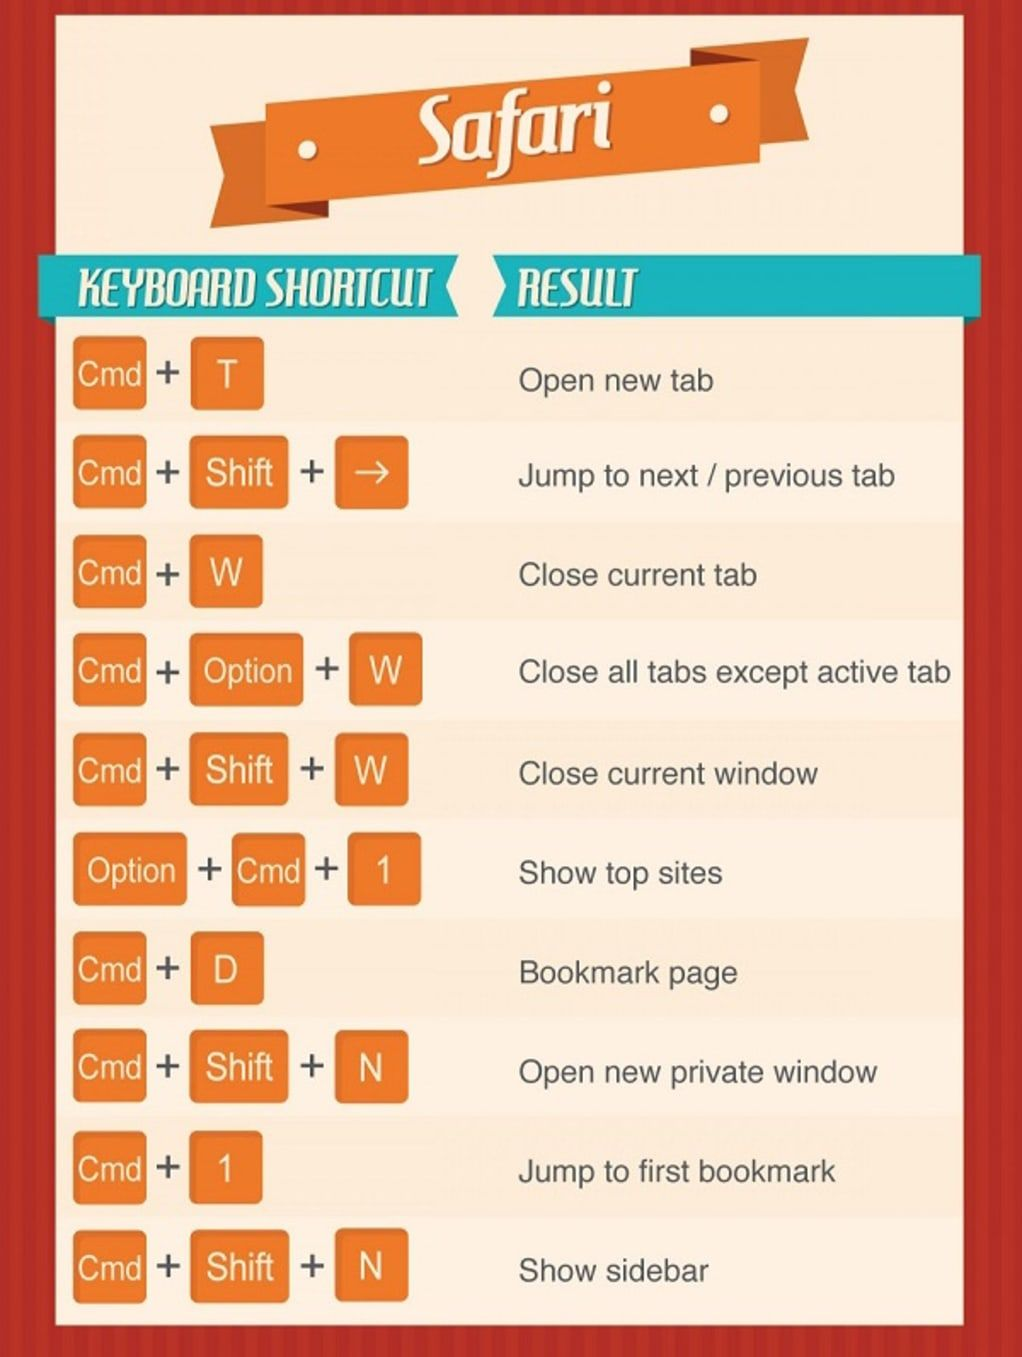 50 keyboard shortcuts that will change your life in 2020